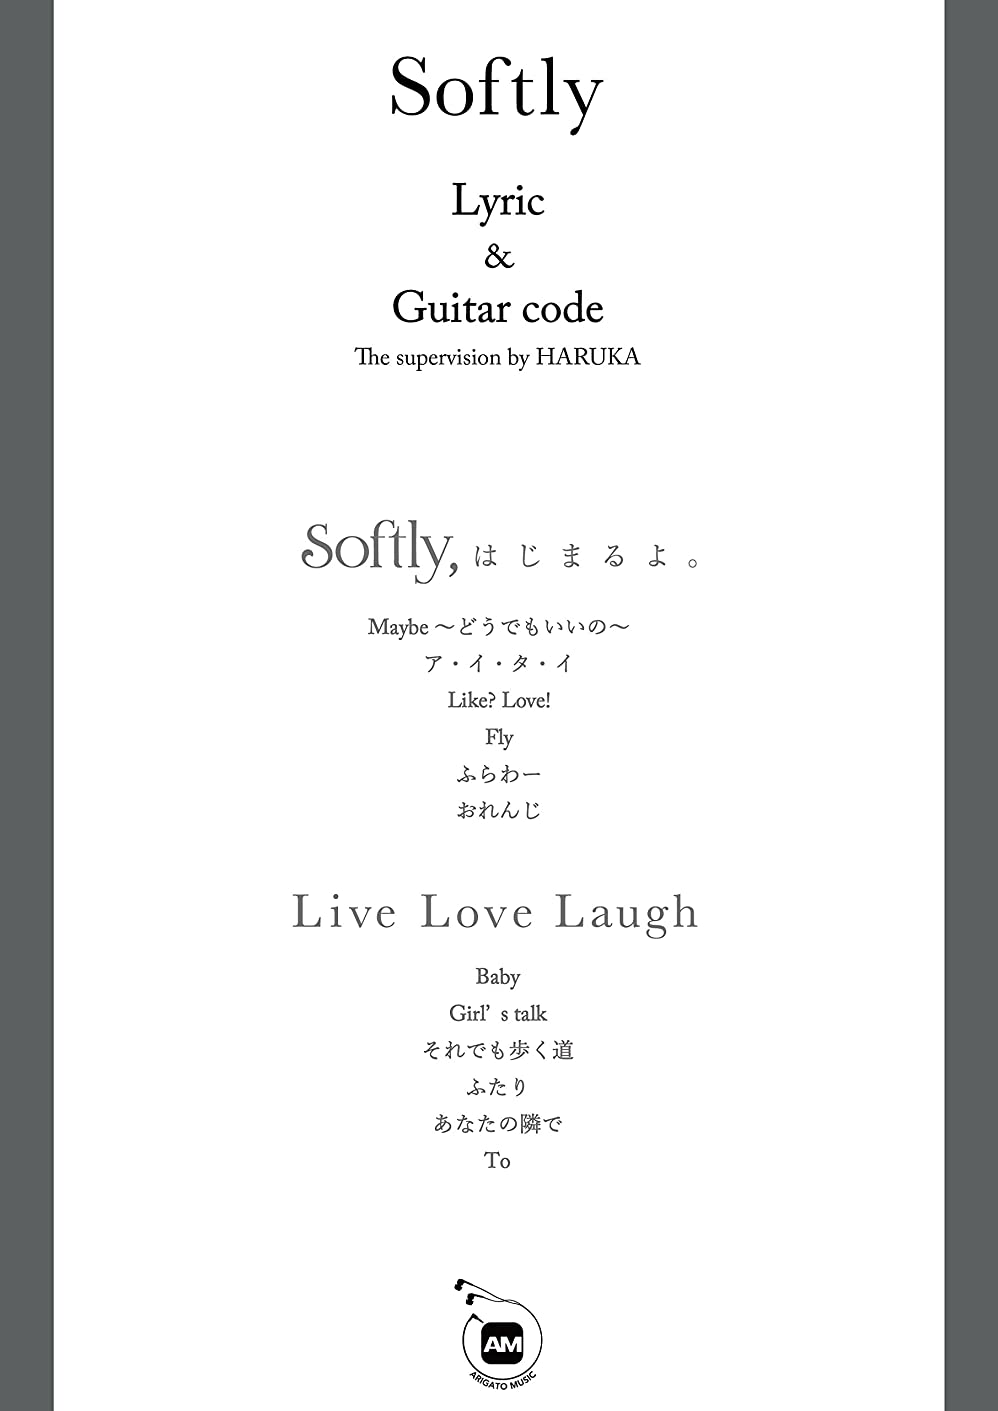 匿名シダ阻害するSoftly~Lyric & Guitar code~ (ARIGATO LABEL)